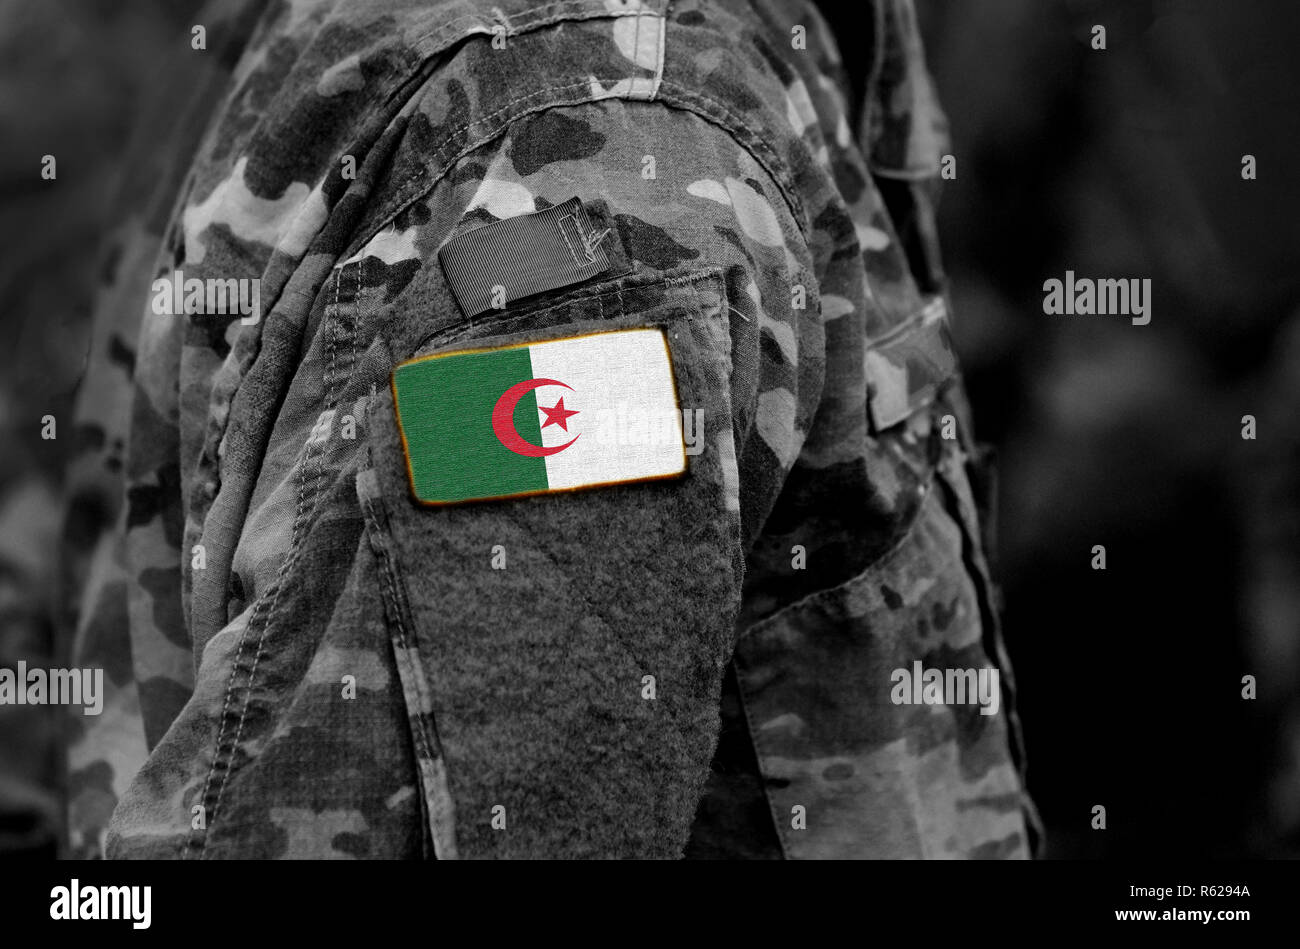 Flag of Algeria on soldiers arm (collage). - Stock Image